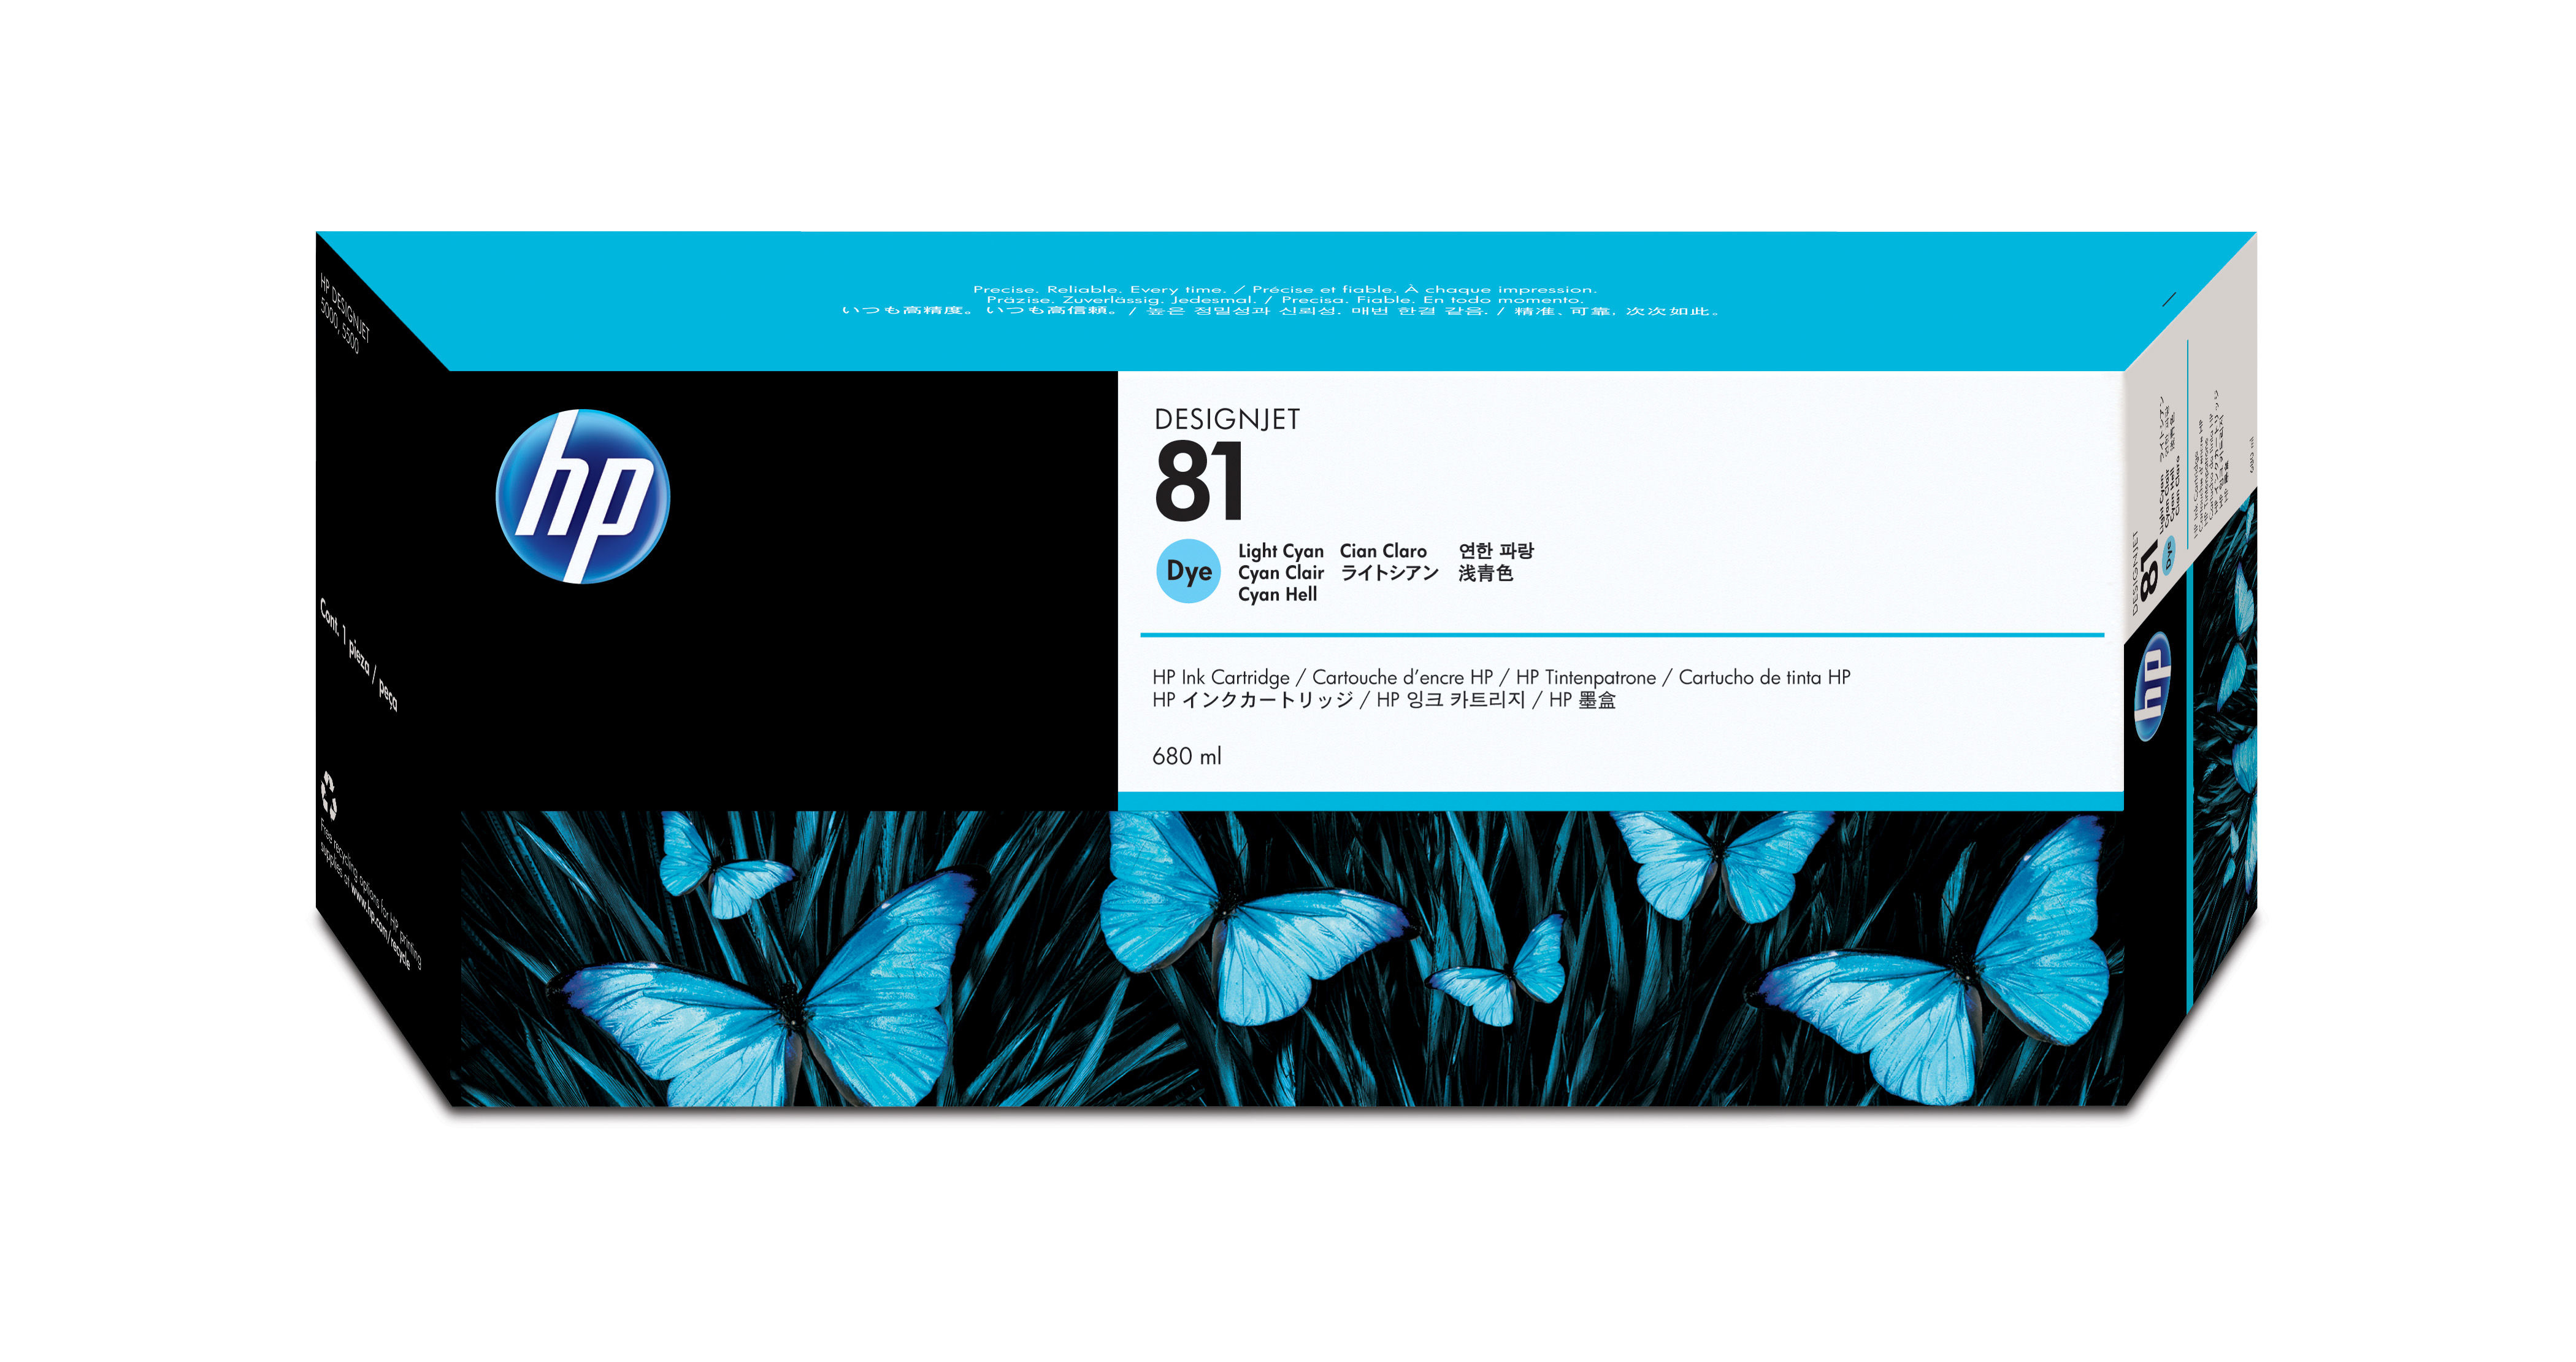 Hp No.81 Dye Light Cyan Ink 680ml C4934a - WC01